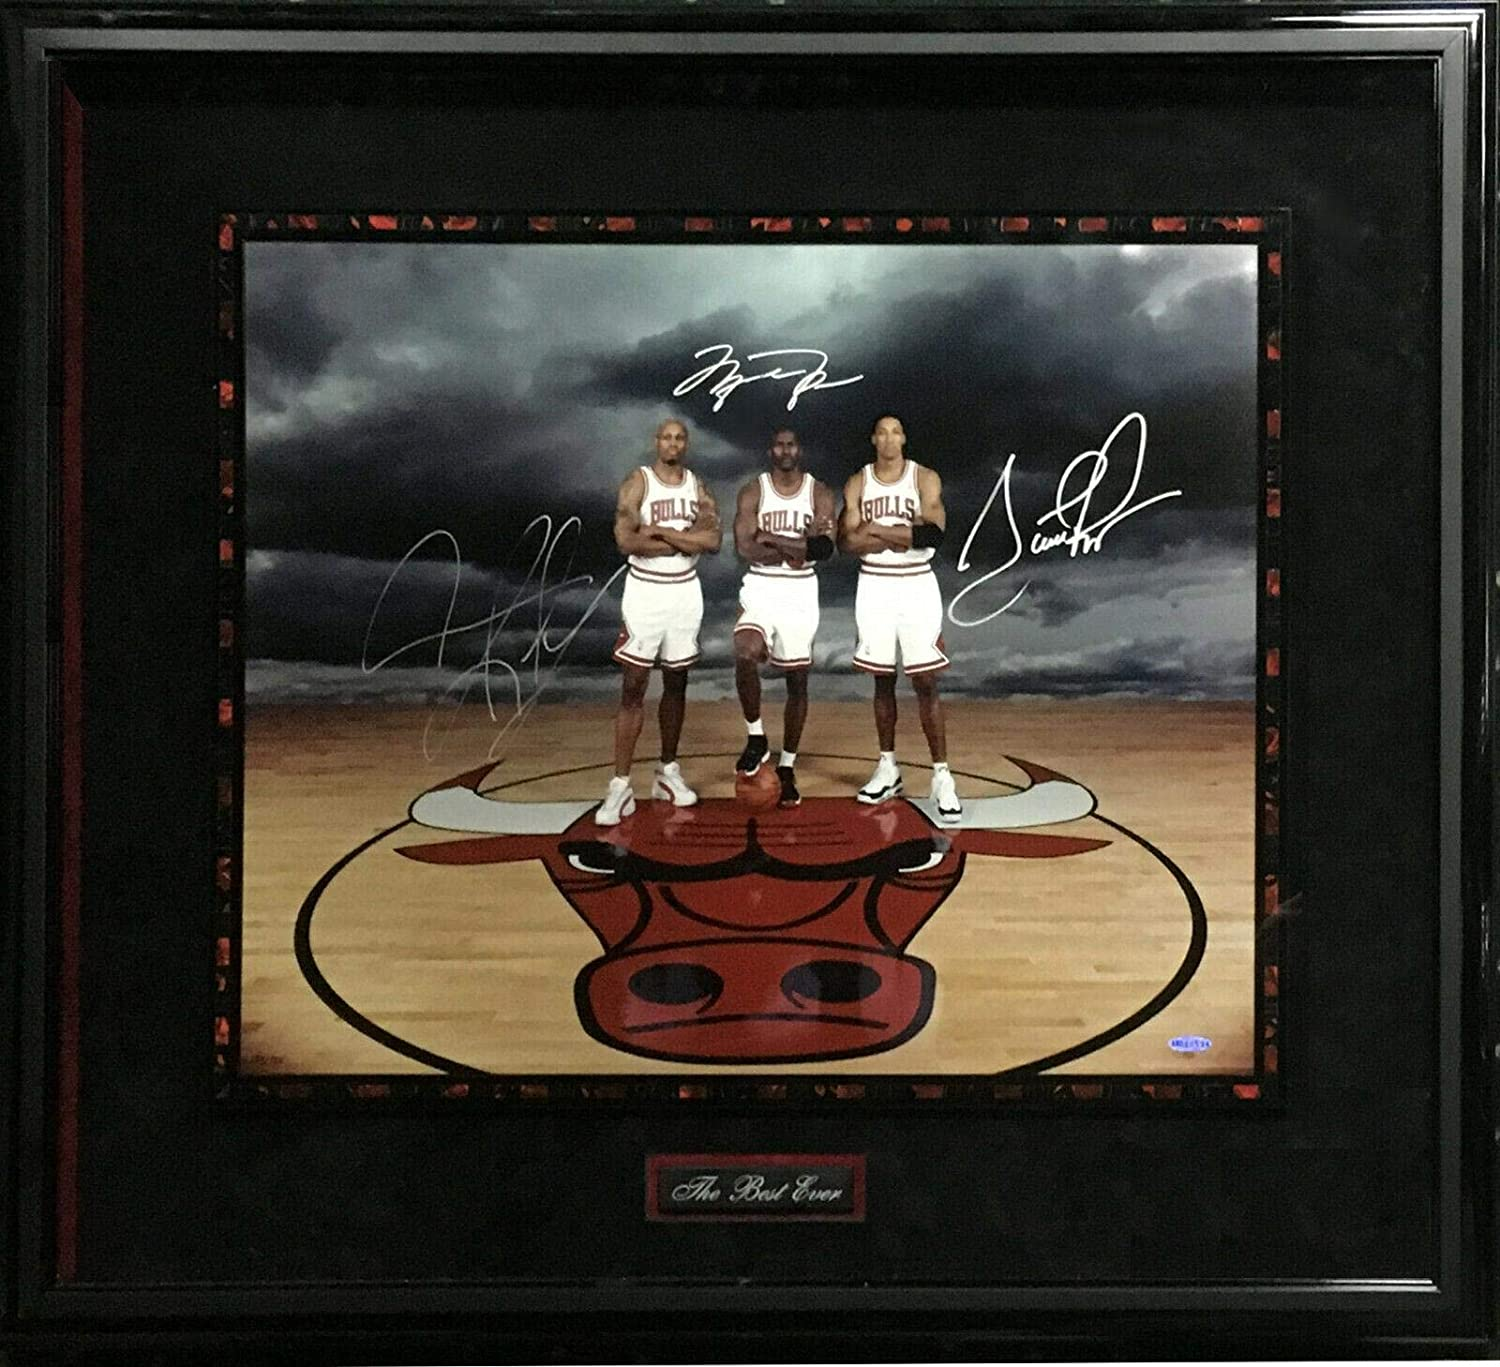 Michael Jordan Scottie Pippen Rodman signed photo framed auto UDA Coa 223/720 - Autographed NBA Photos